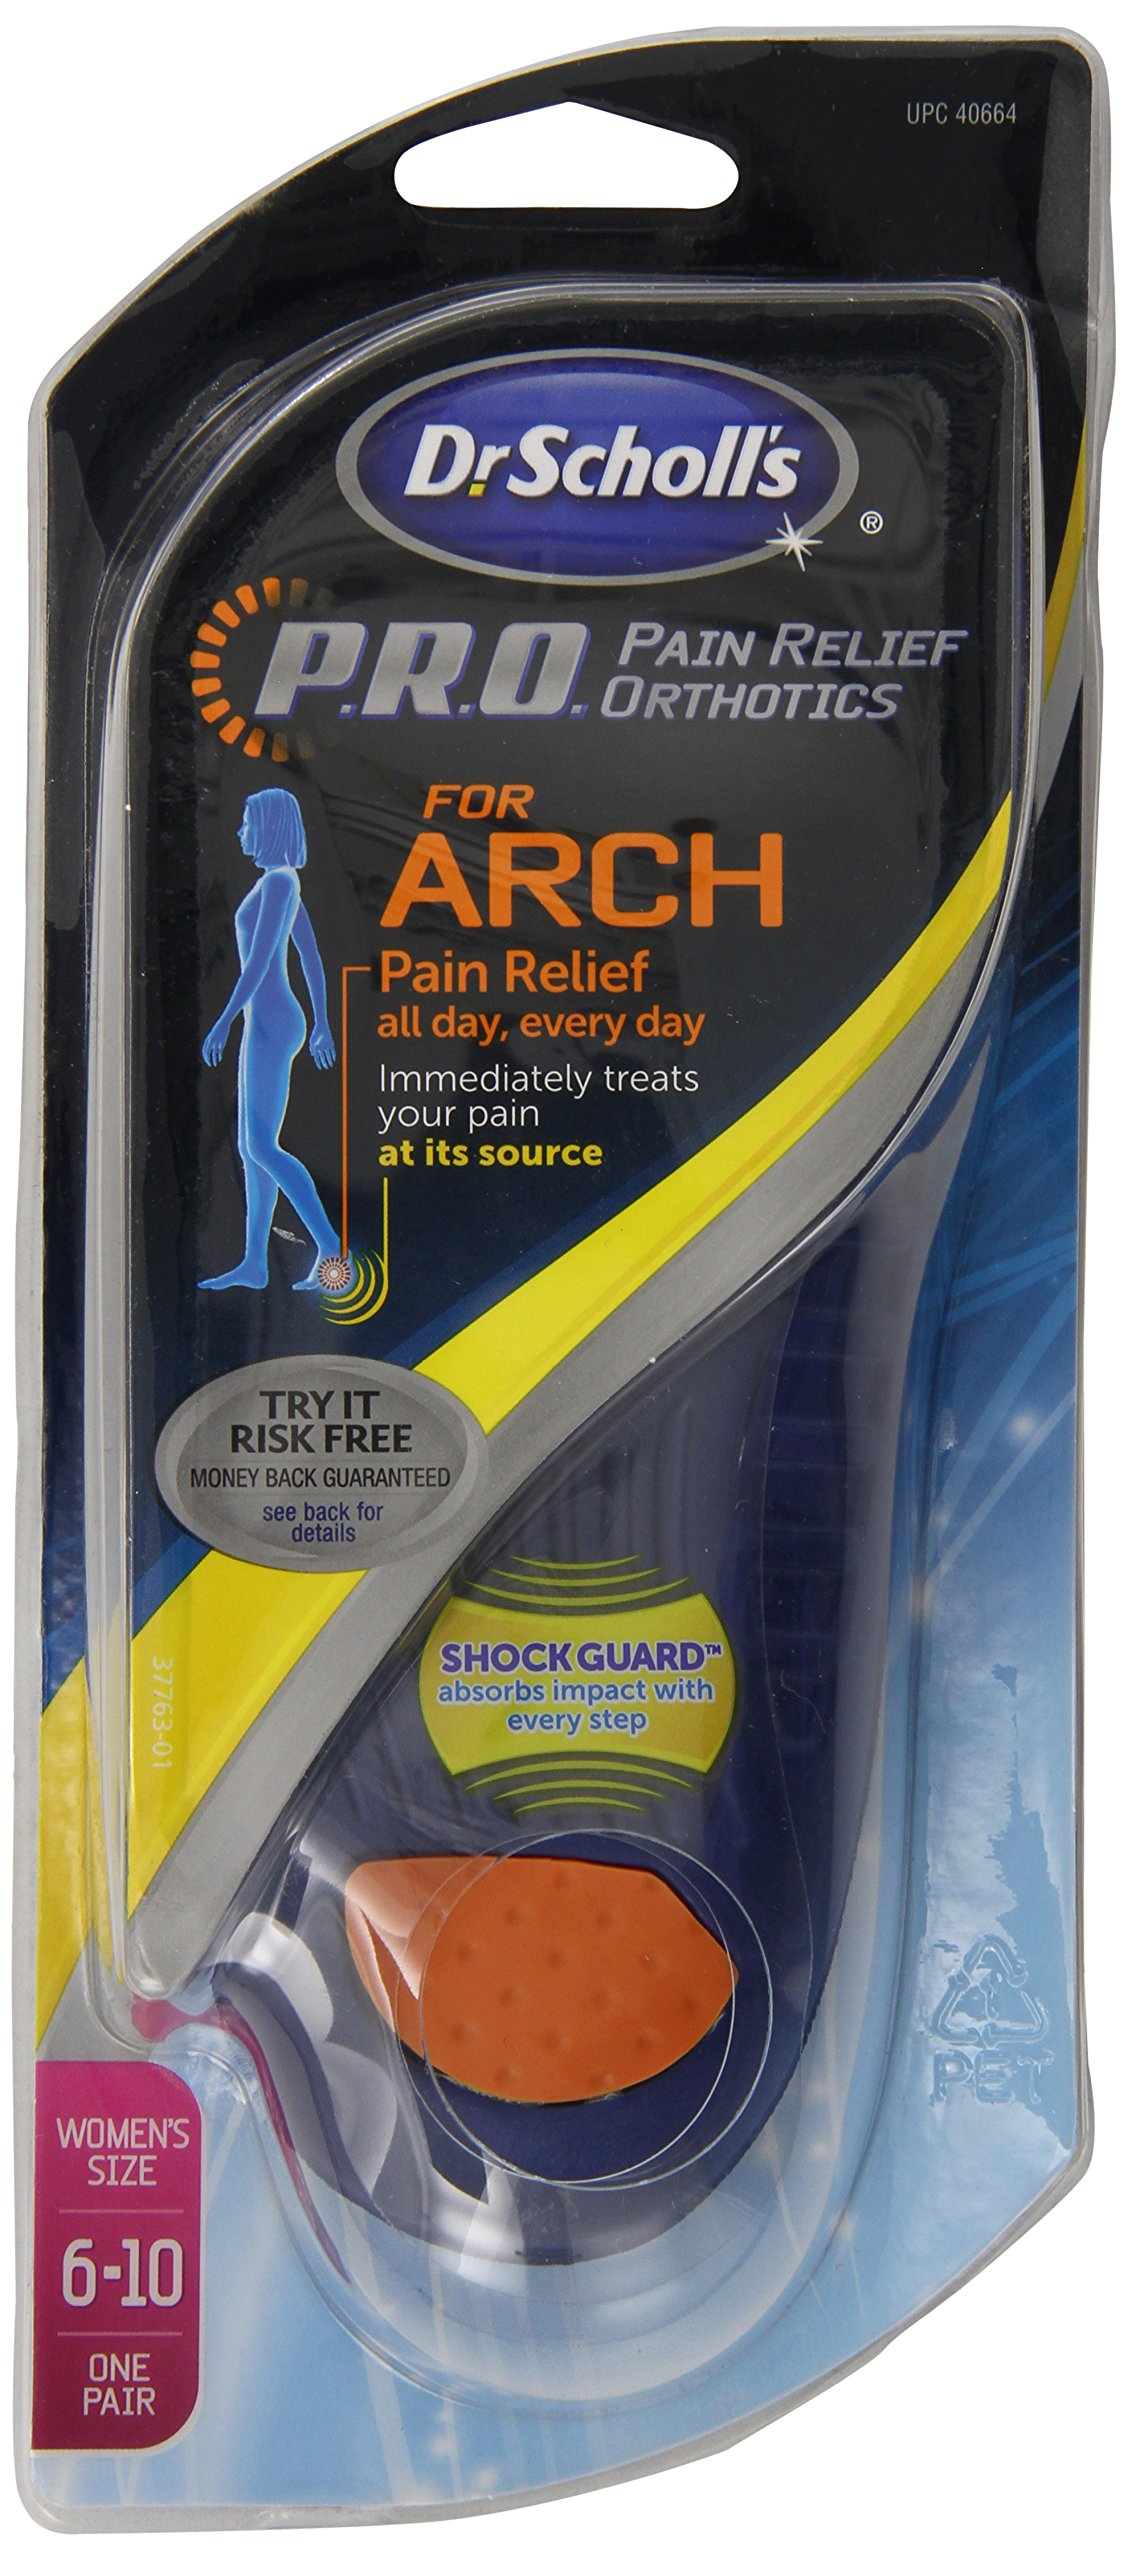 Dr Scholl's Arch Pain Relief Orthotic Womens, Sizes 6 - 10